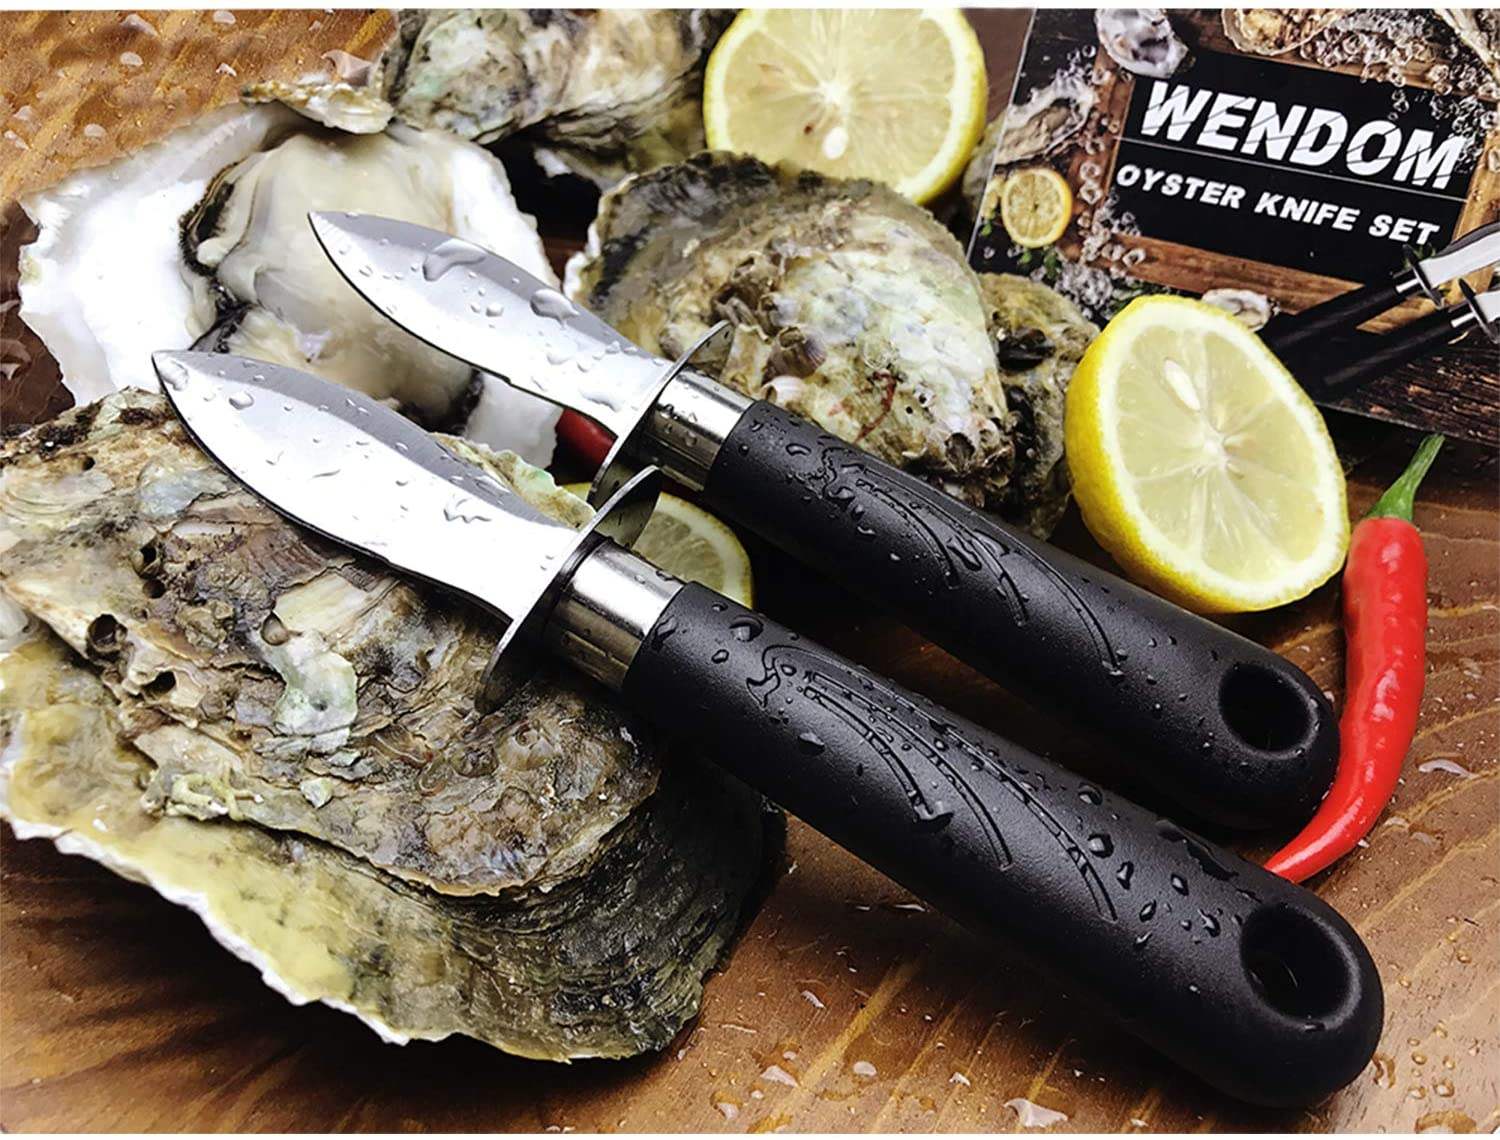 WENDOM Oyster Knife Shucker Set Including two Oyster Knives and one piece glove